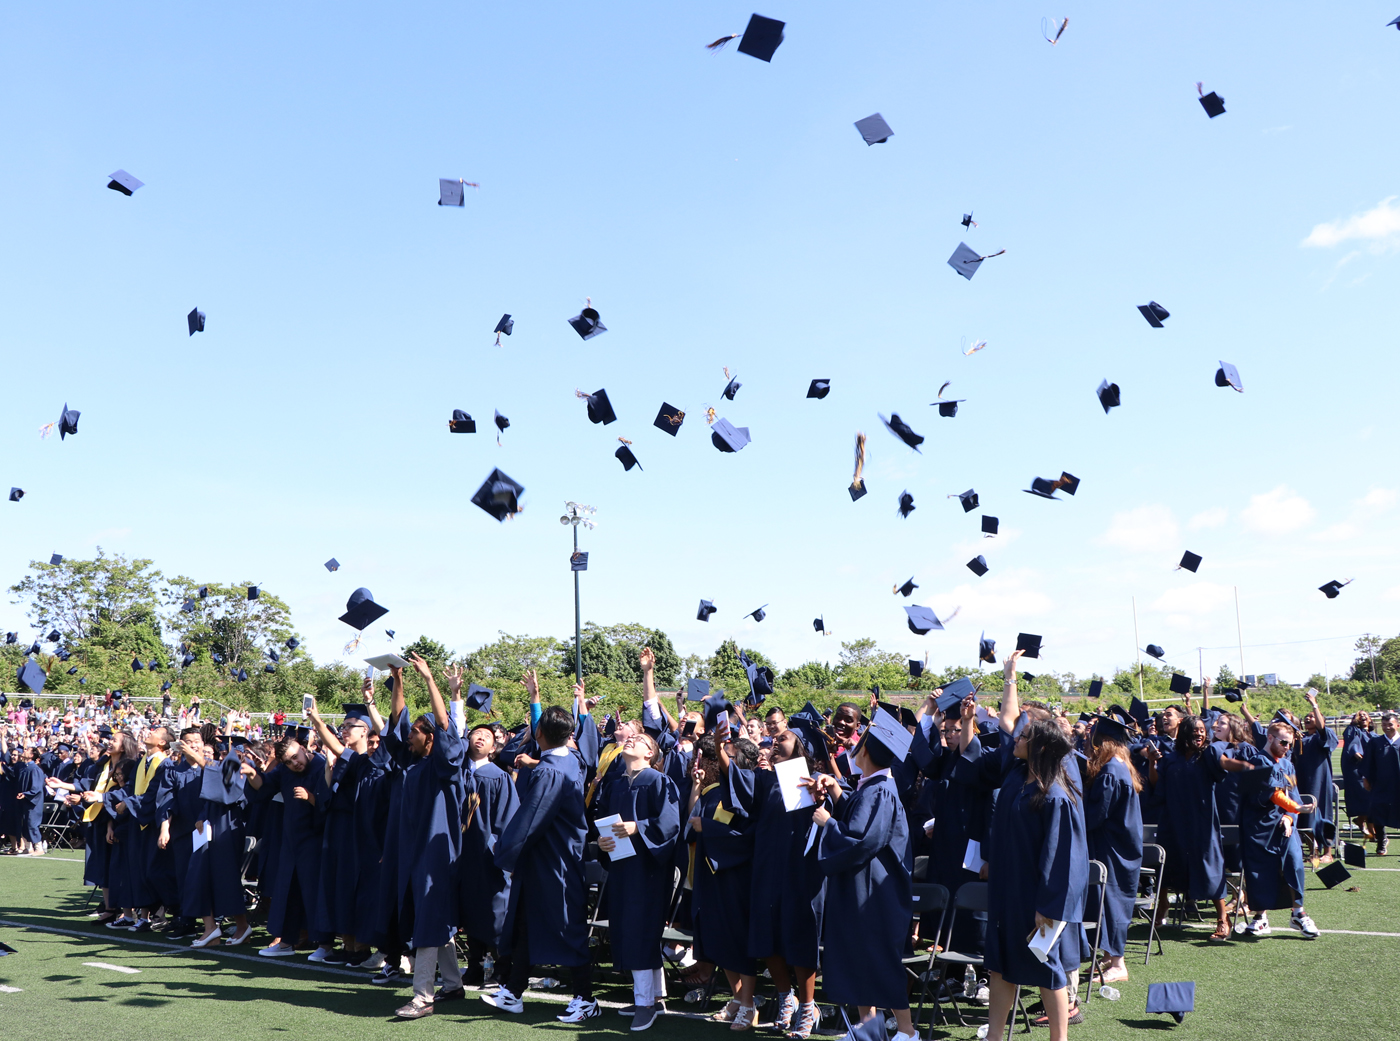 With the toss of their caps the MHS Class of 2018 graduation ceremony id concluded.